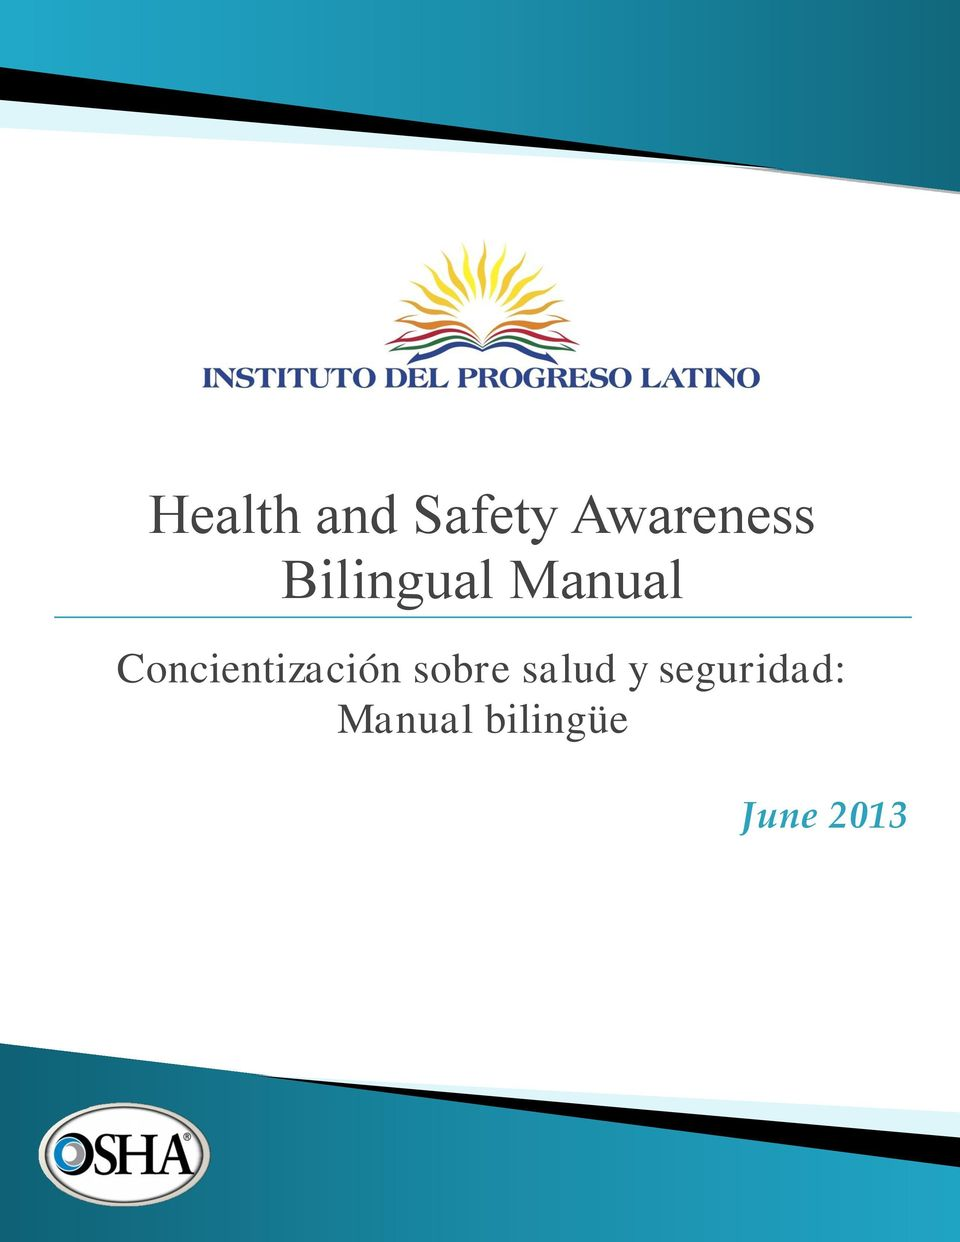 Bilingual Manual Concientización sobre